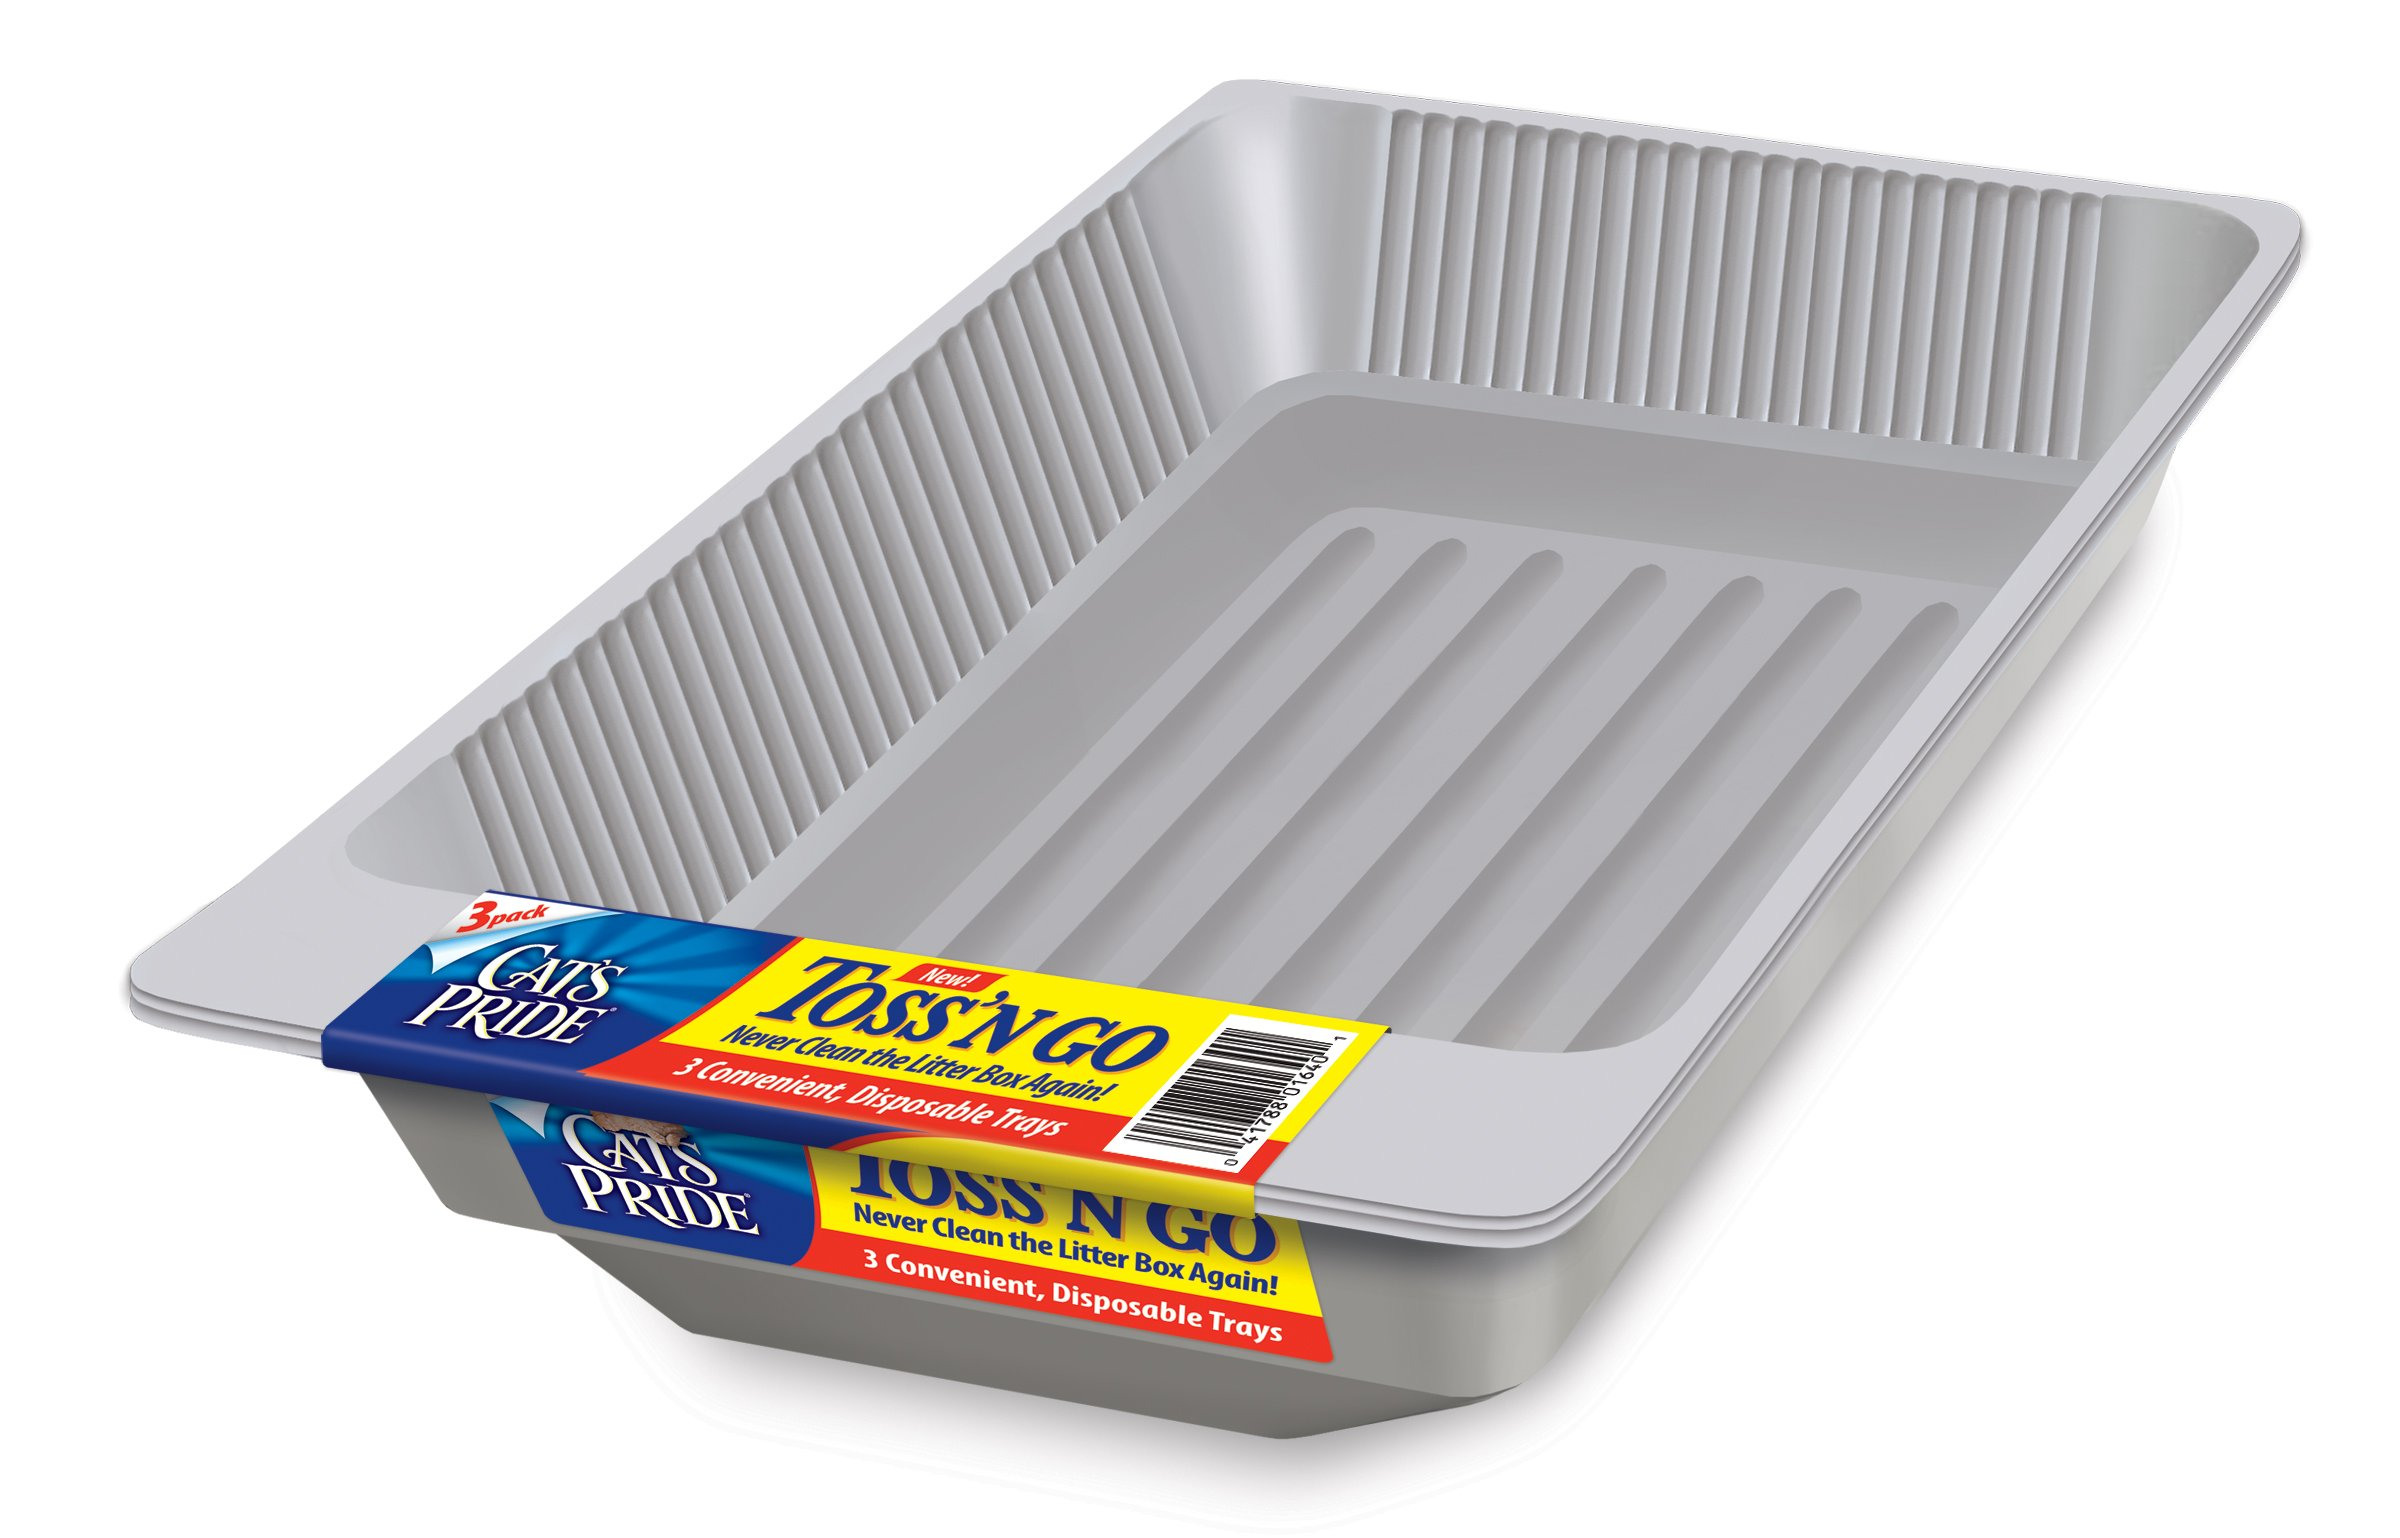 Cat's Pride 01640 Toss 'N Go Disposable Litter Tray by Cat's Pride